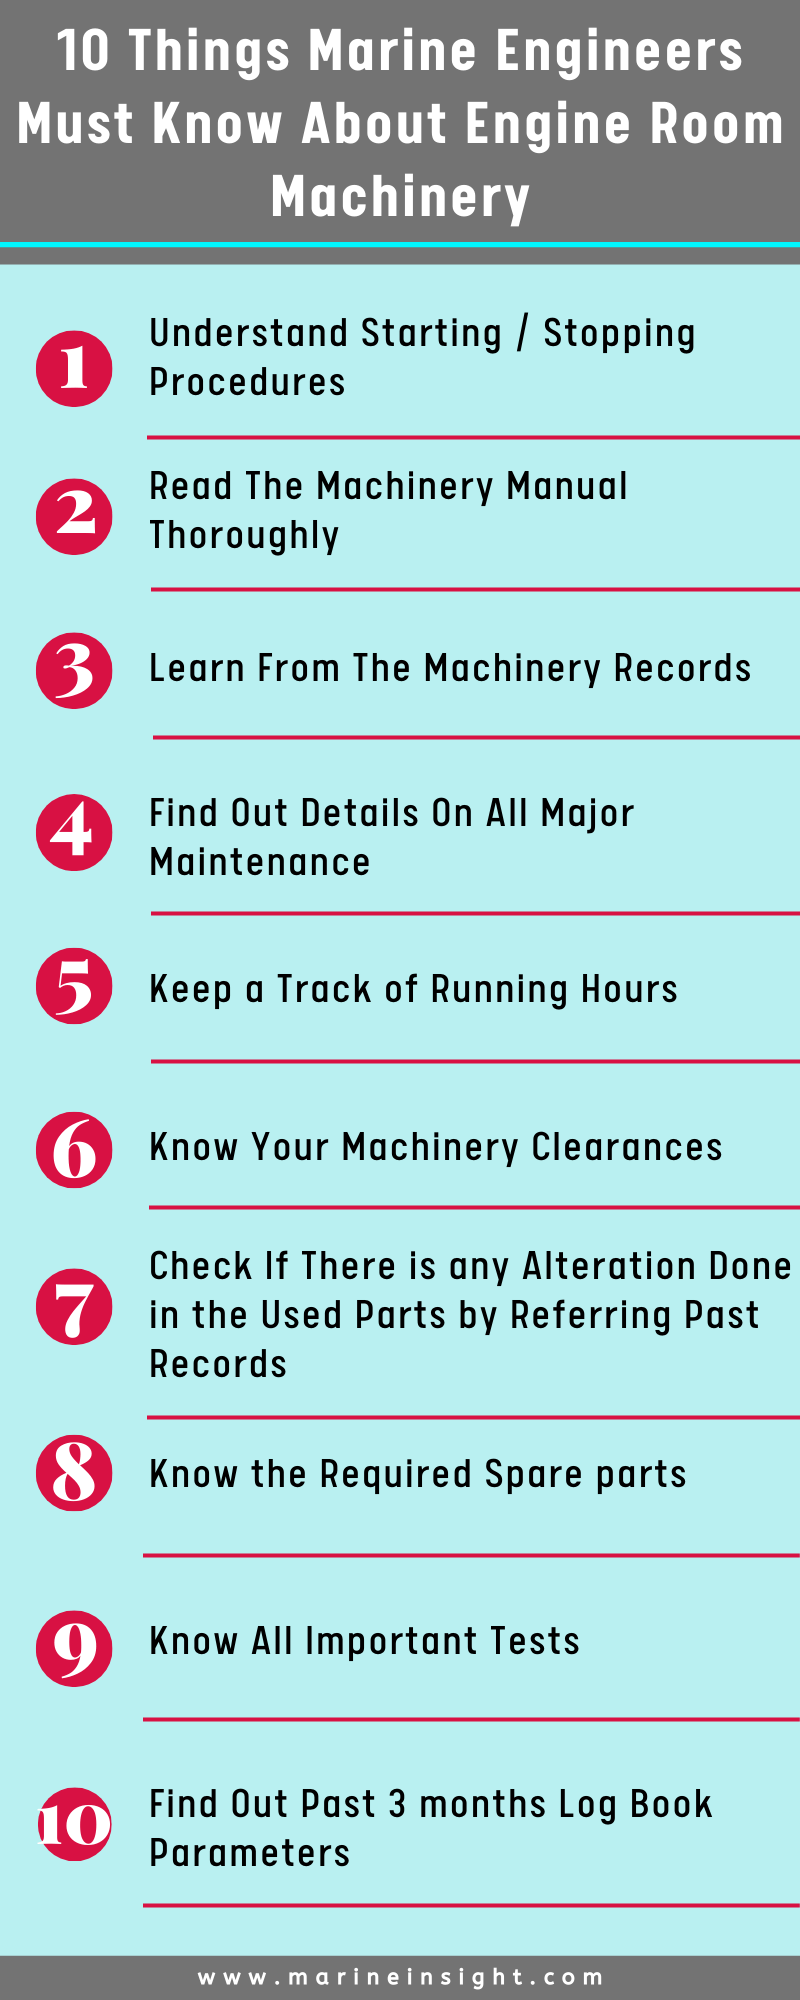 Marine Engine Room: 10 Things Marine Engineers Must Do To Know Their Machinery